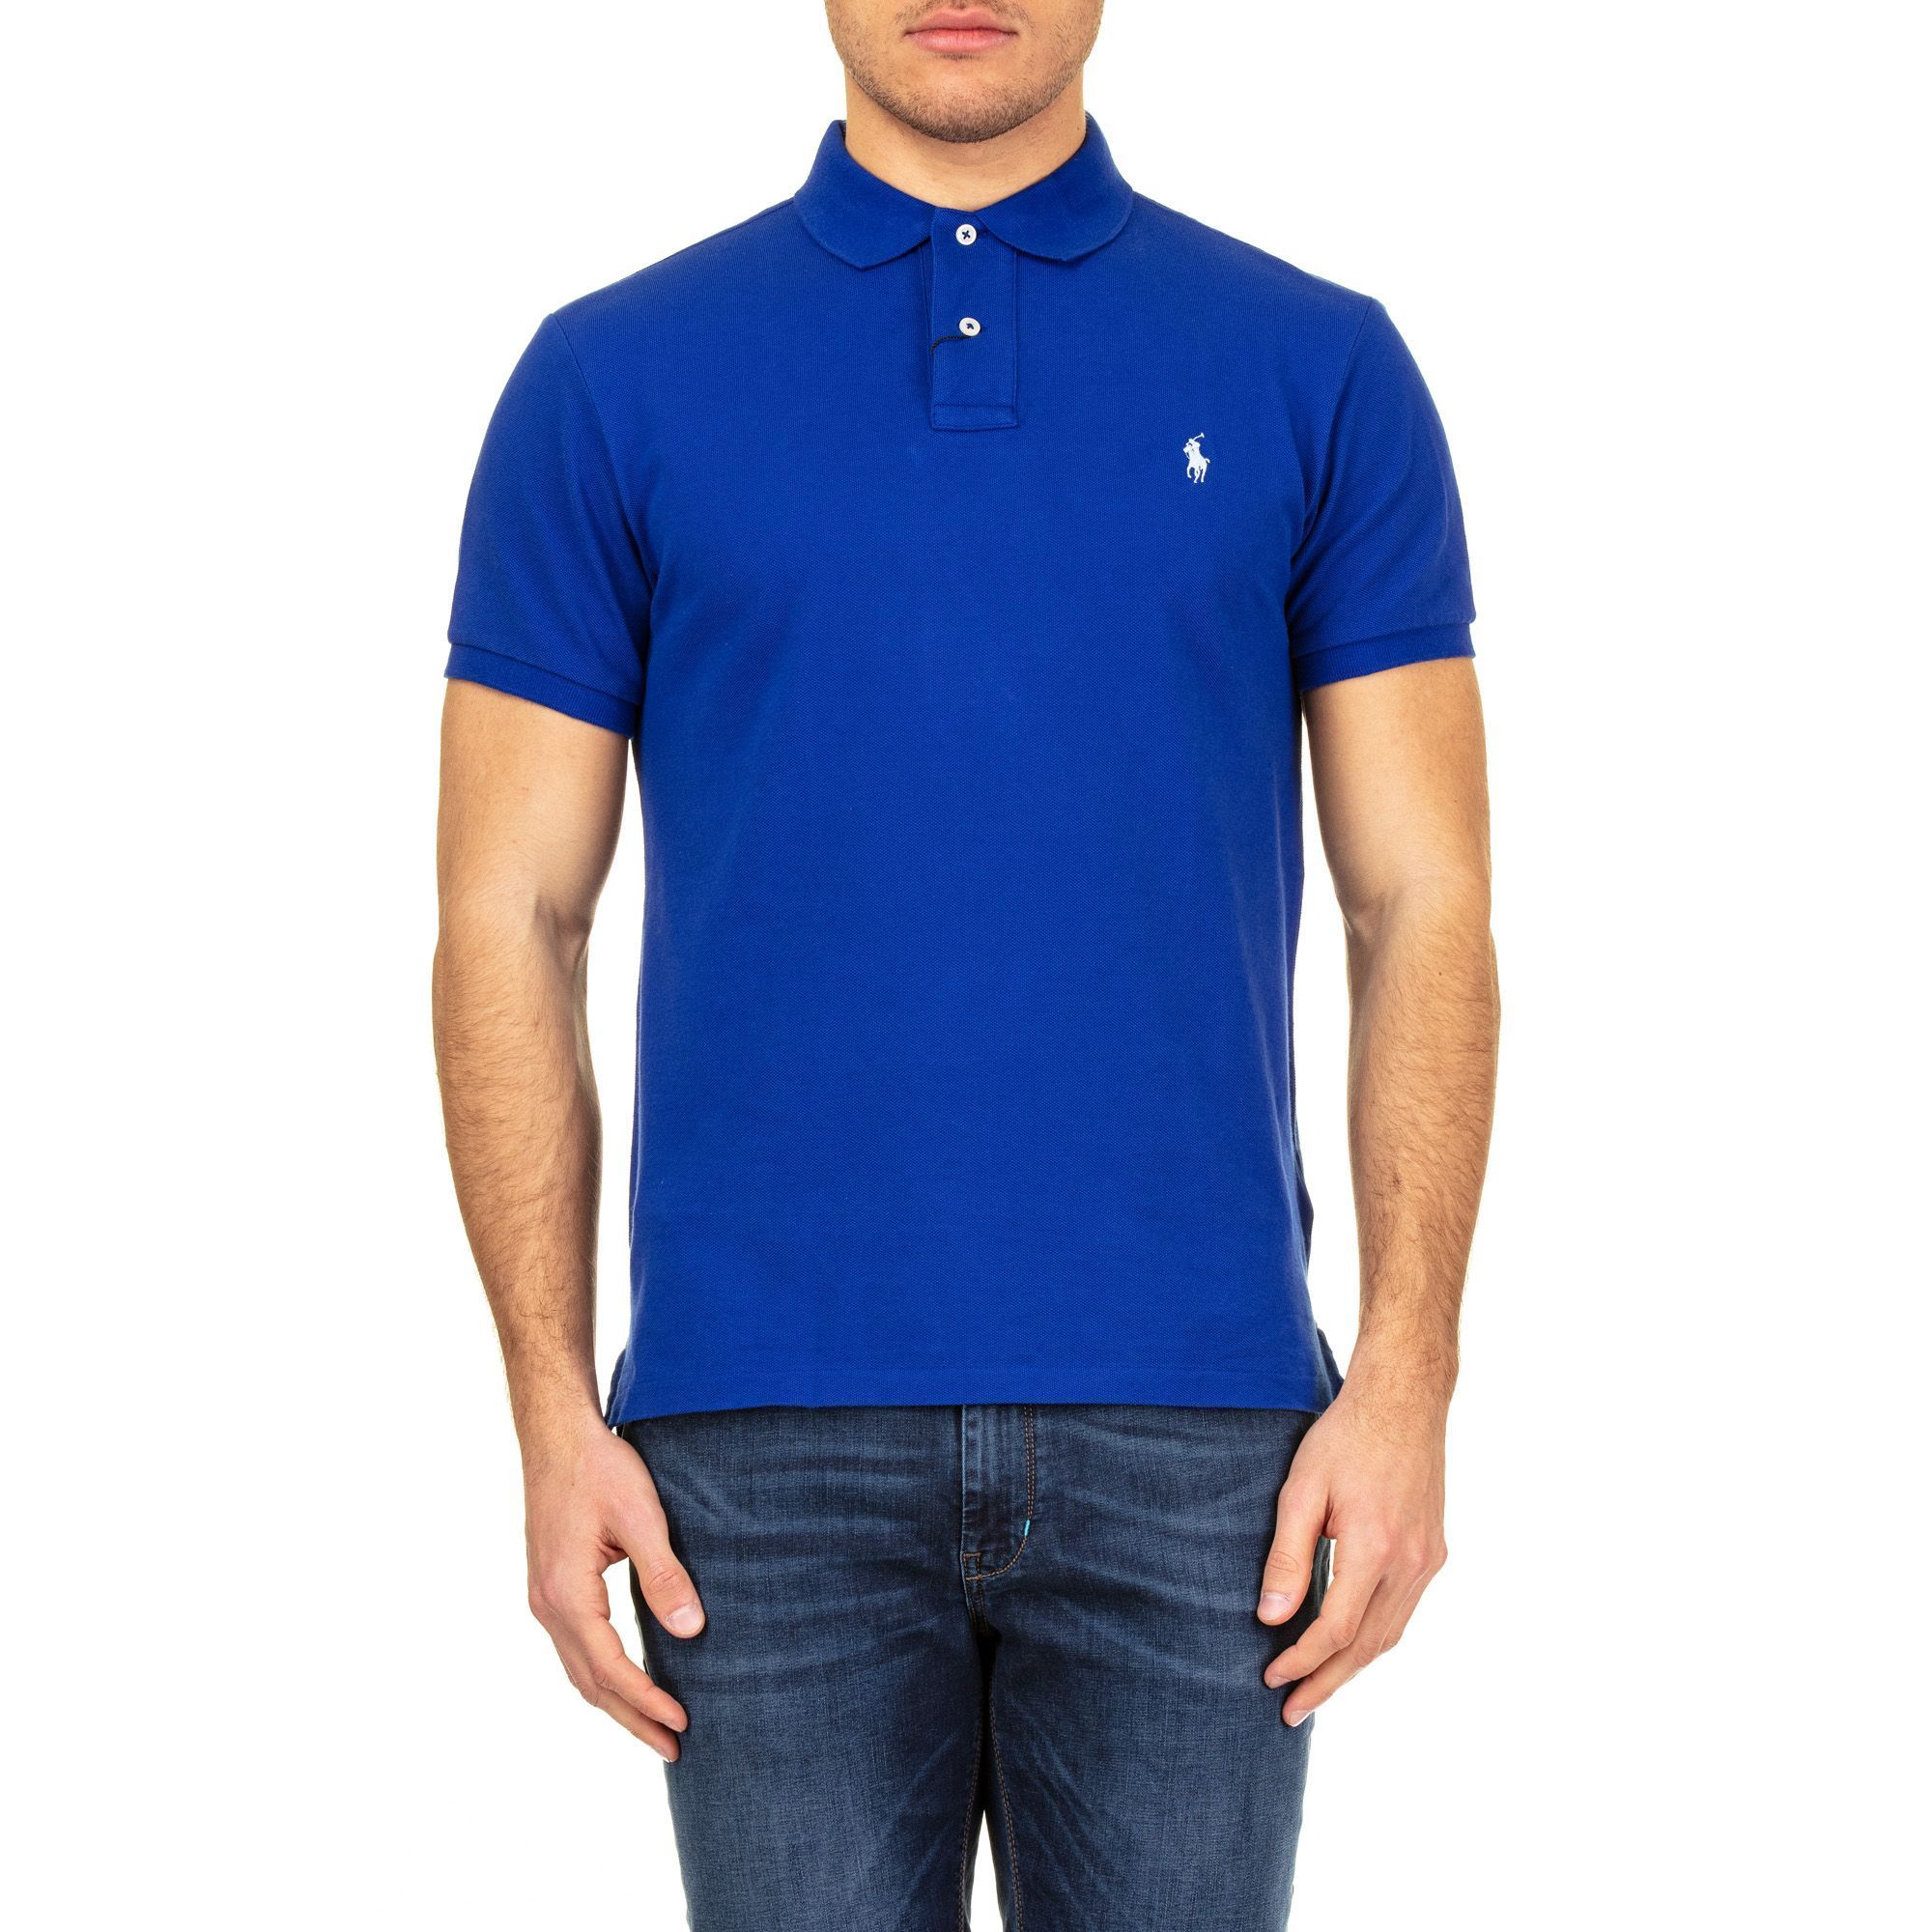 RALPH LAUREN MEN'S 710536856085 BLUE COTTON POLO SHIRT